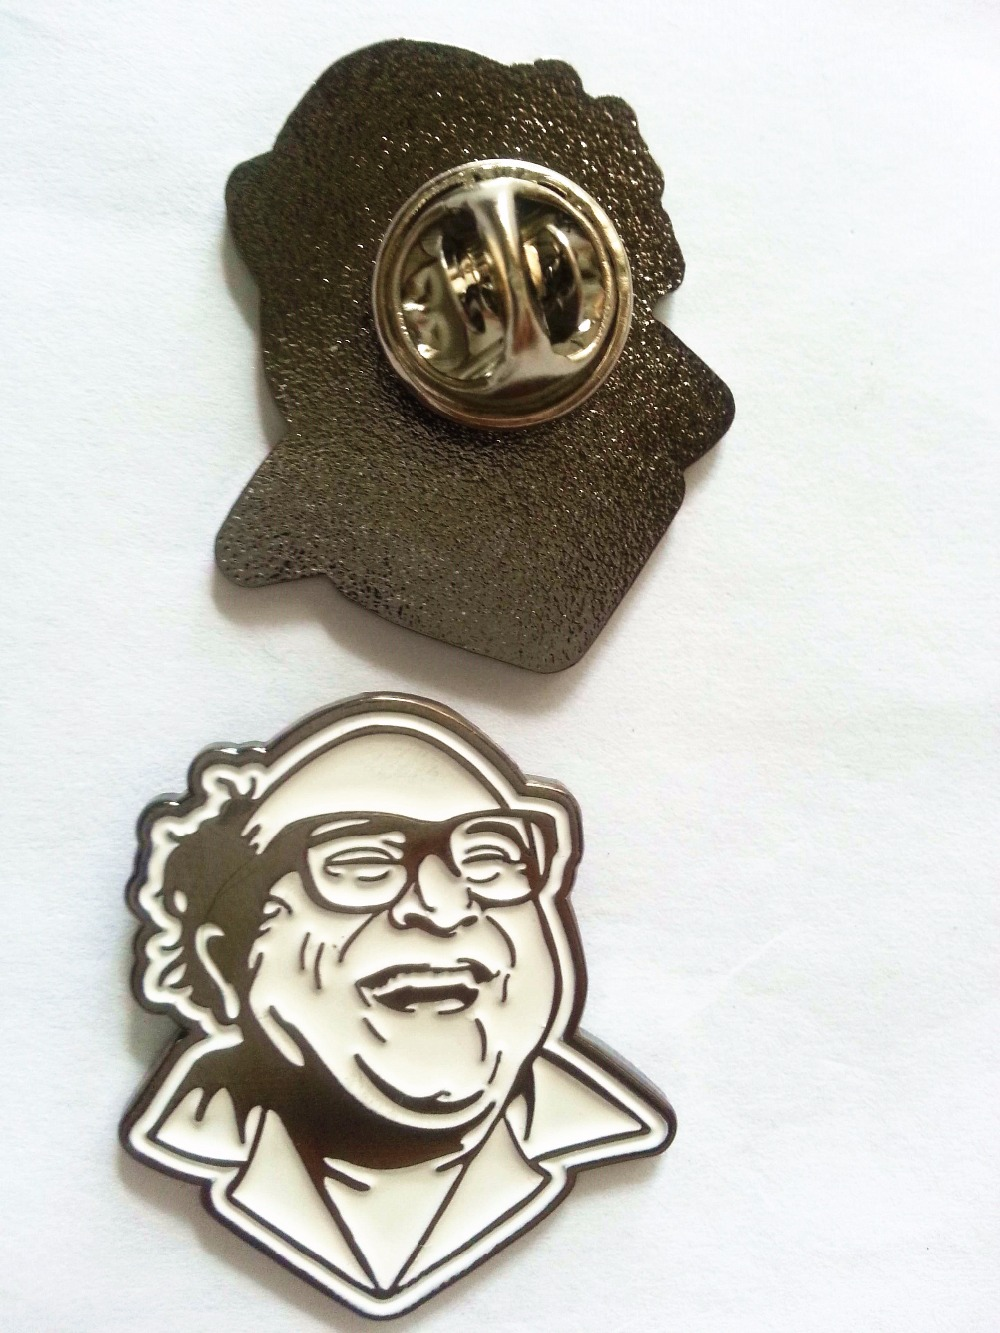 US $113 0 |customized old man lapel soft enamel pins with black nickel  plating+butterfly clutch without epoxy-in Badges from Home & Garden on